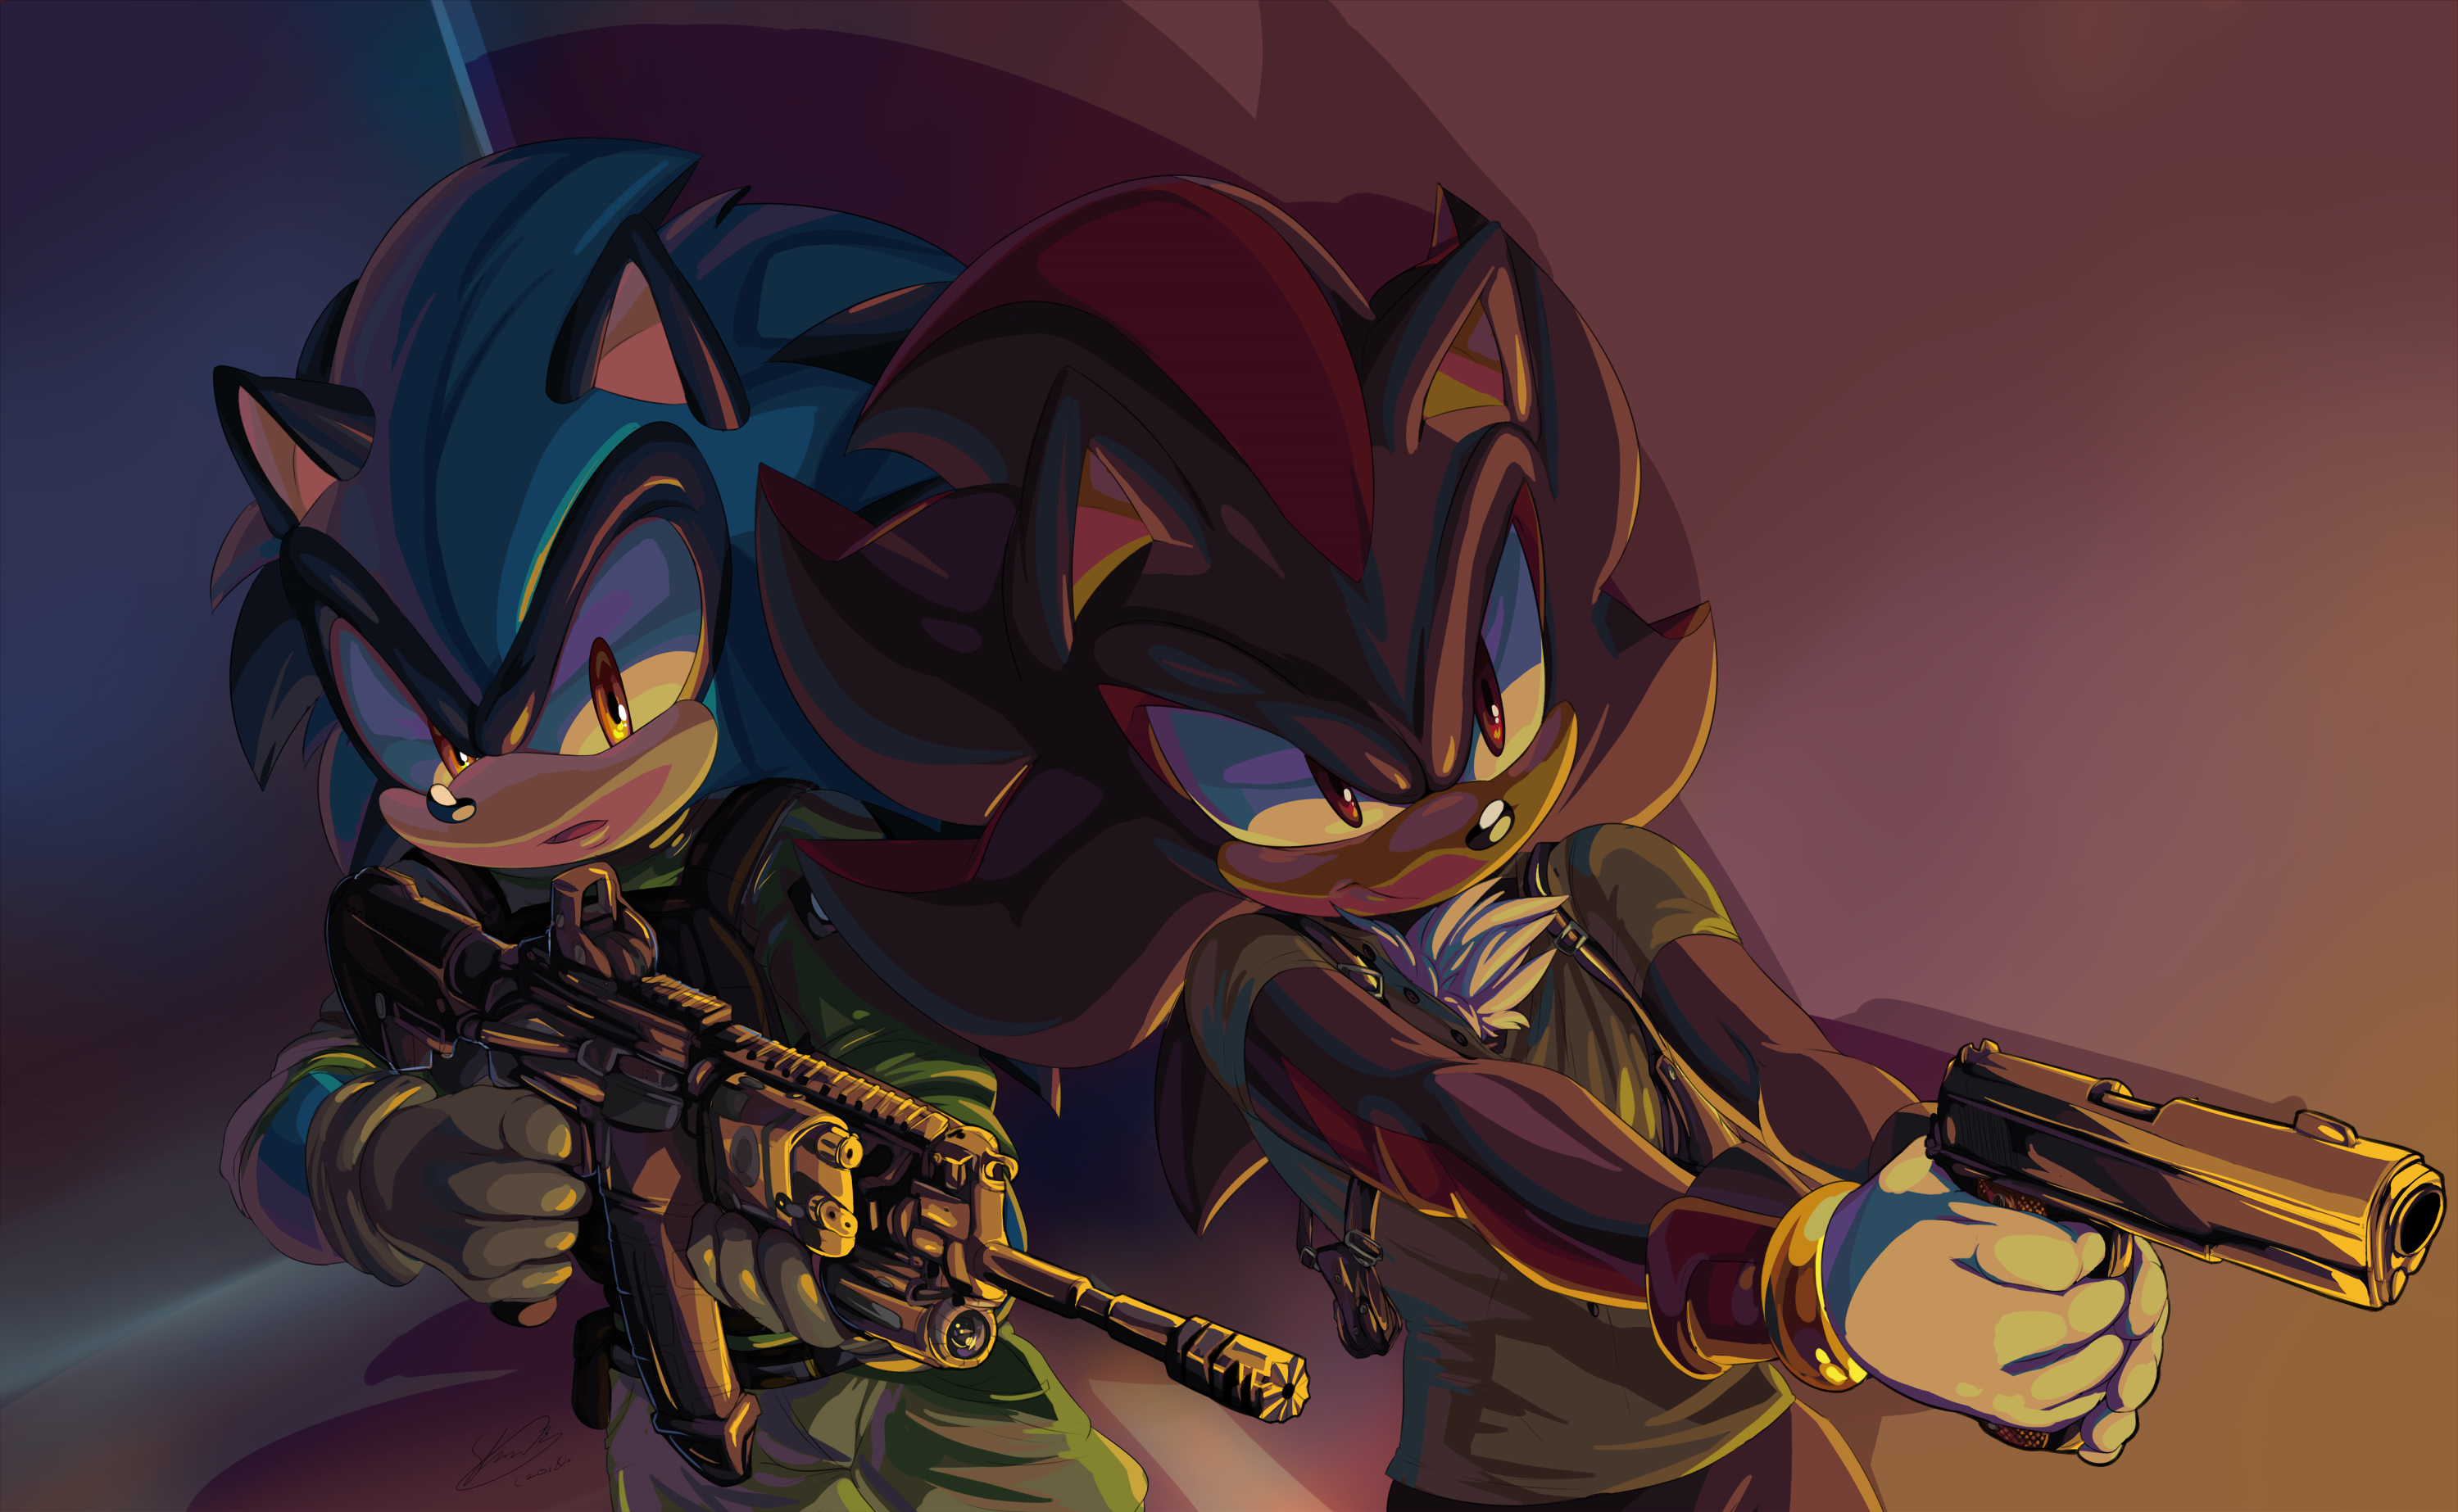 Sonic The Hedgehog Hd Wallpaper Background Image 3000x1846 Id 956229 Wallpaper Abyss